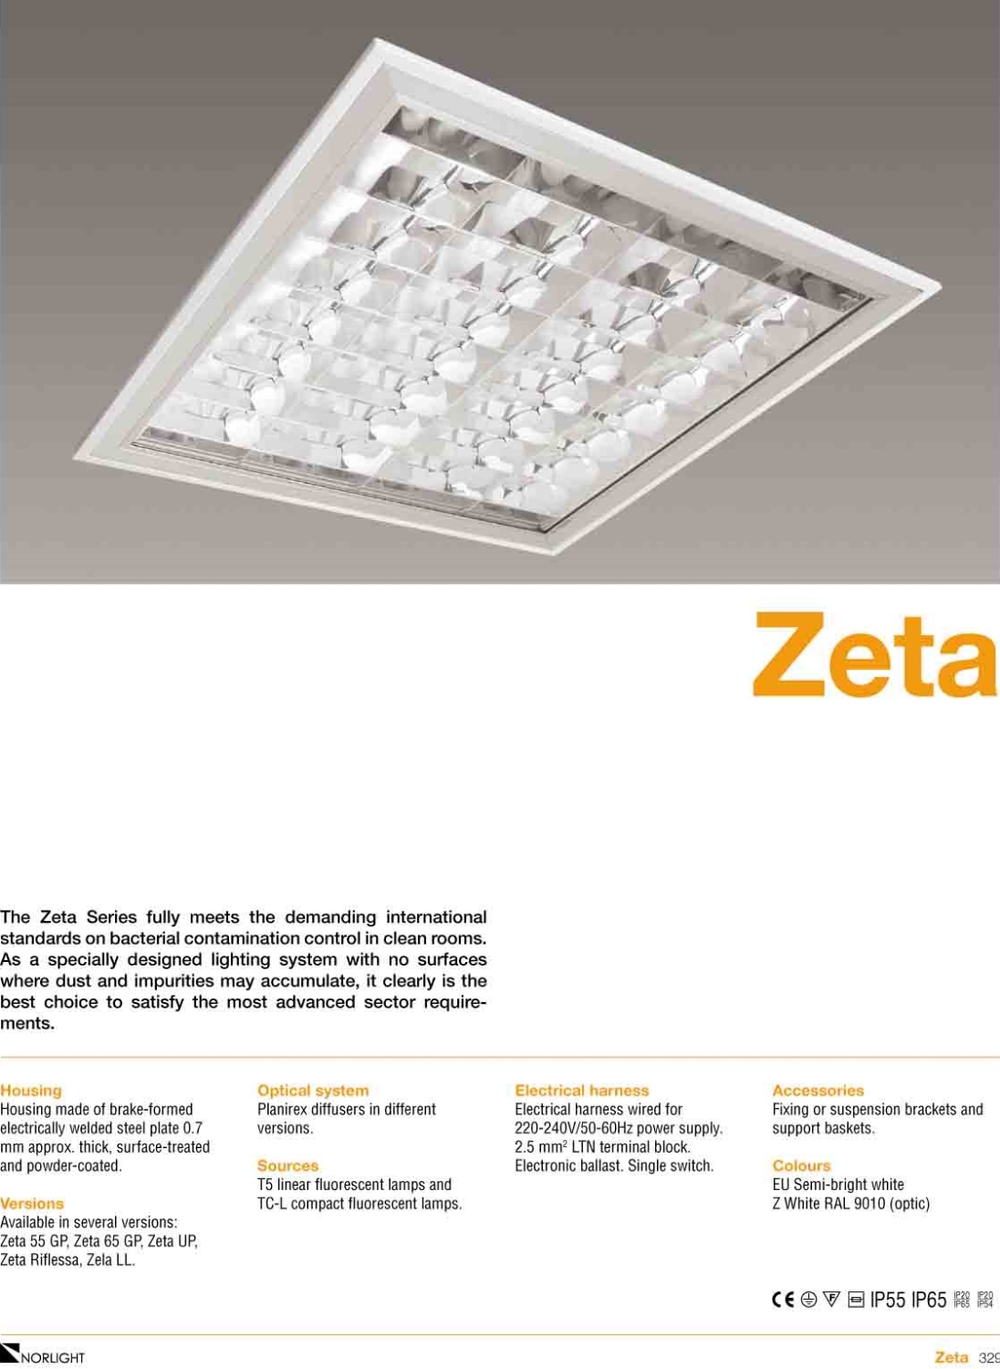 105_Norlight_Catalogue_2012_Zeta Cleanroom-330.jpg